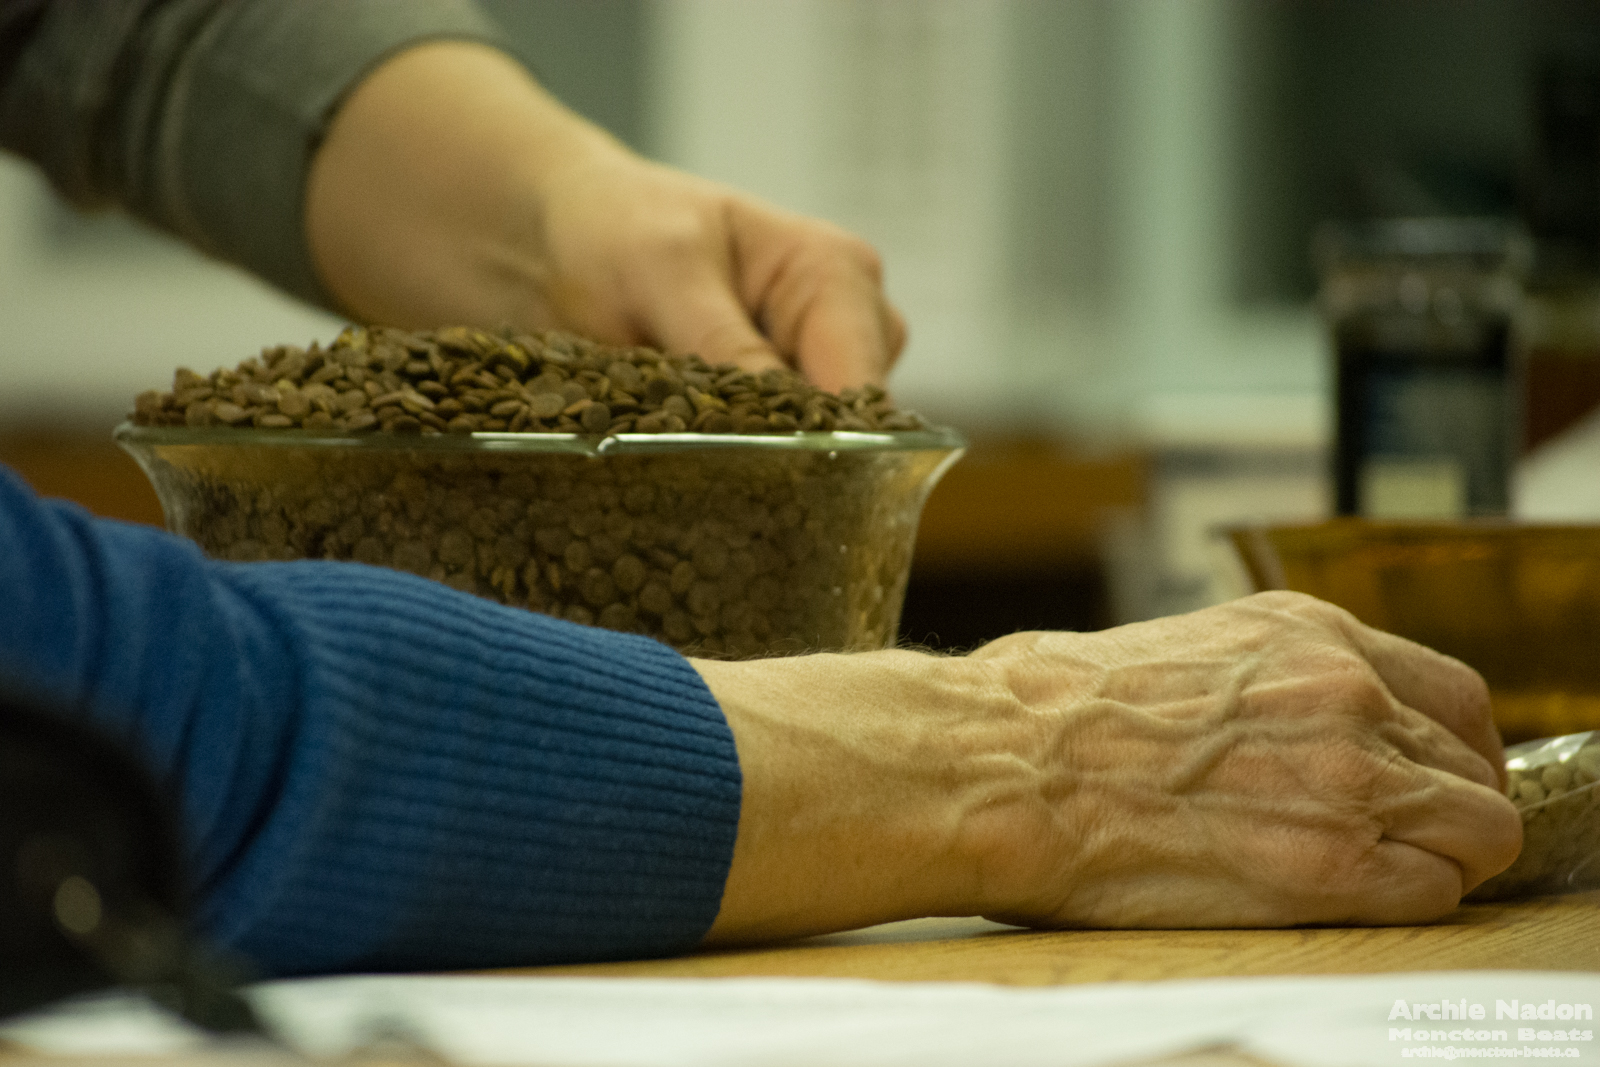 hands and seeds